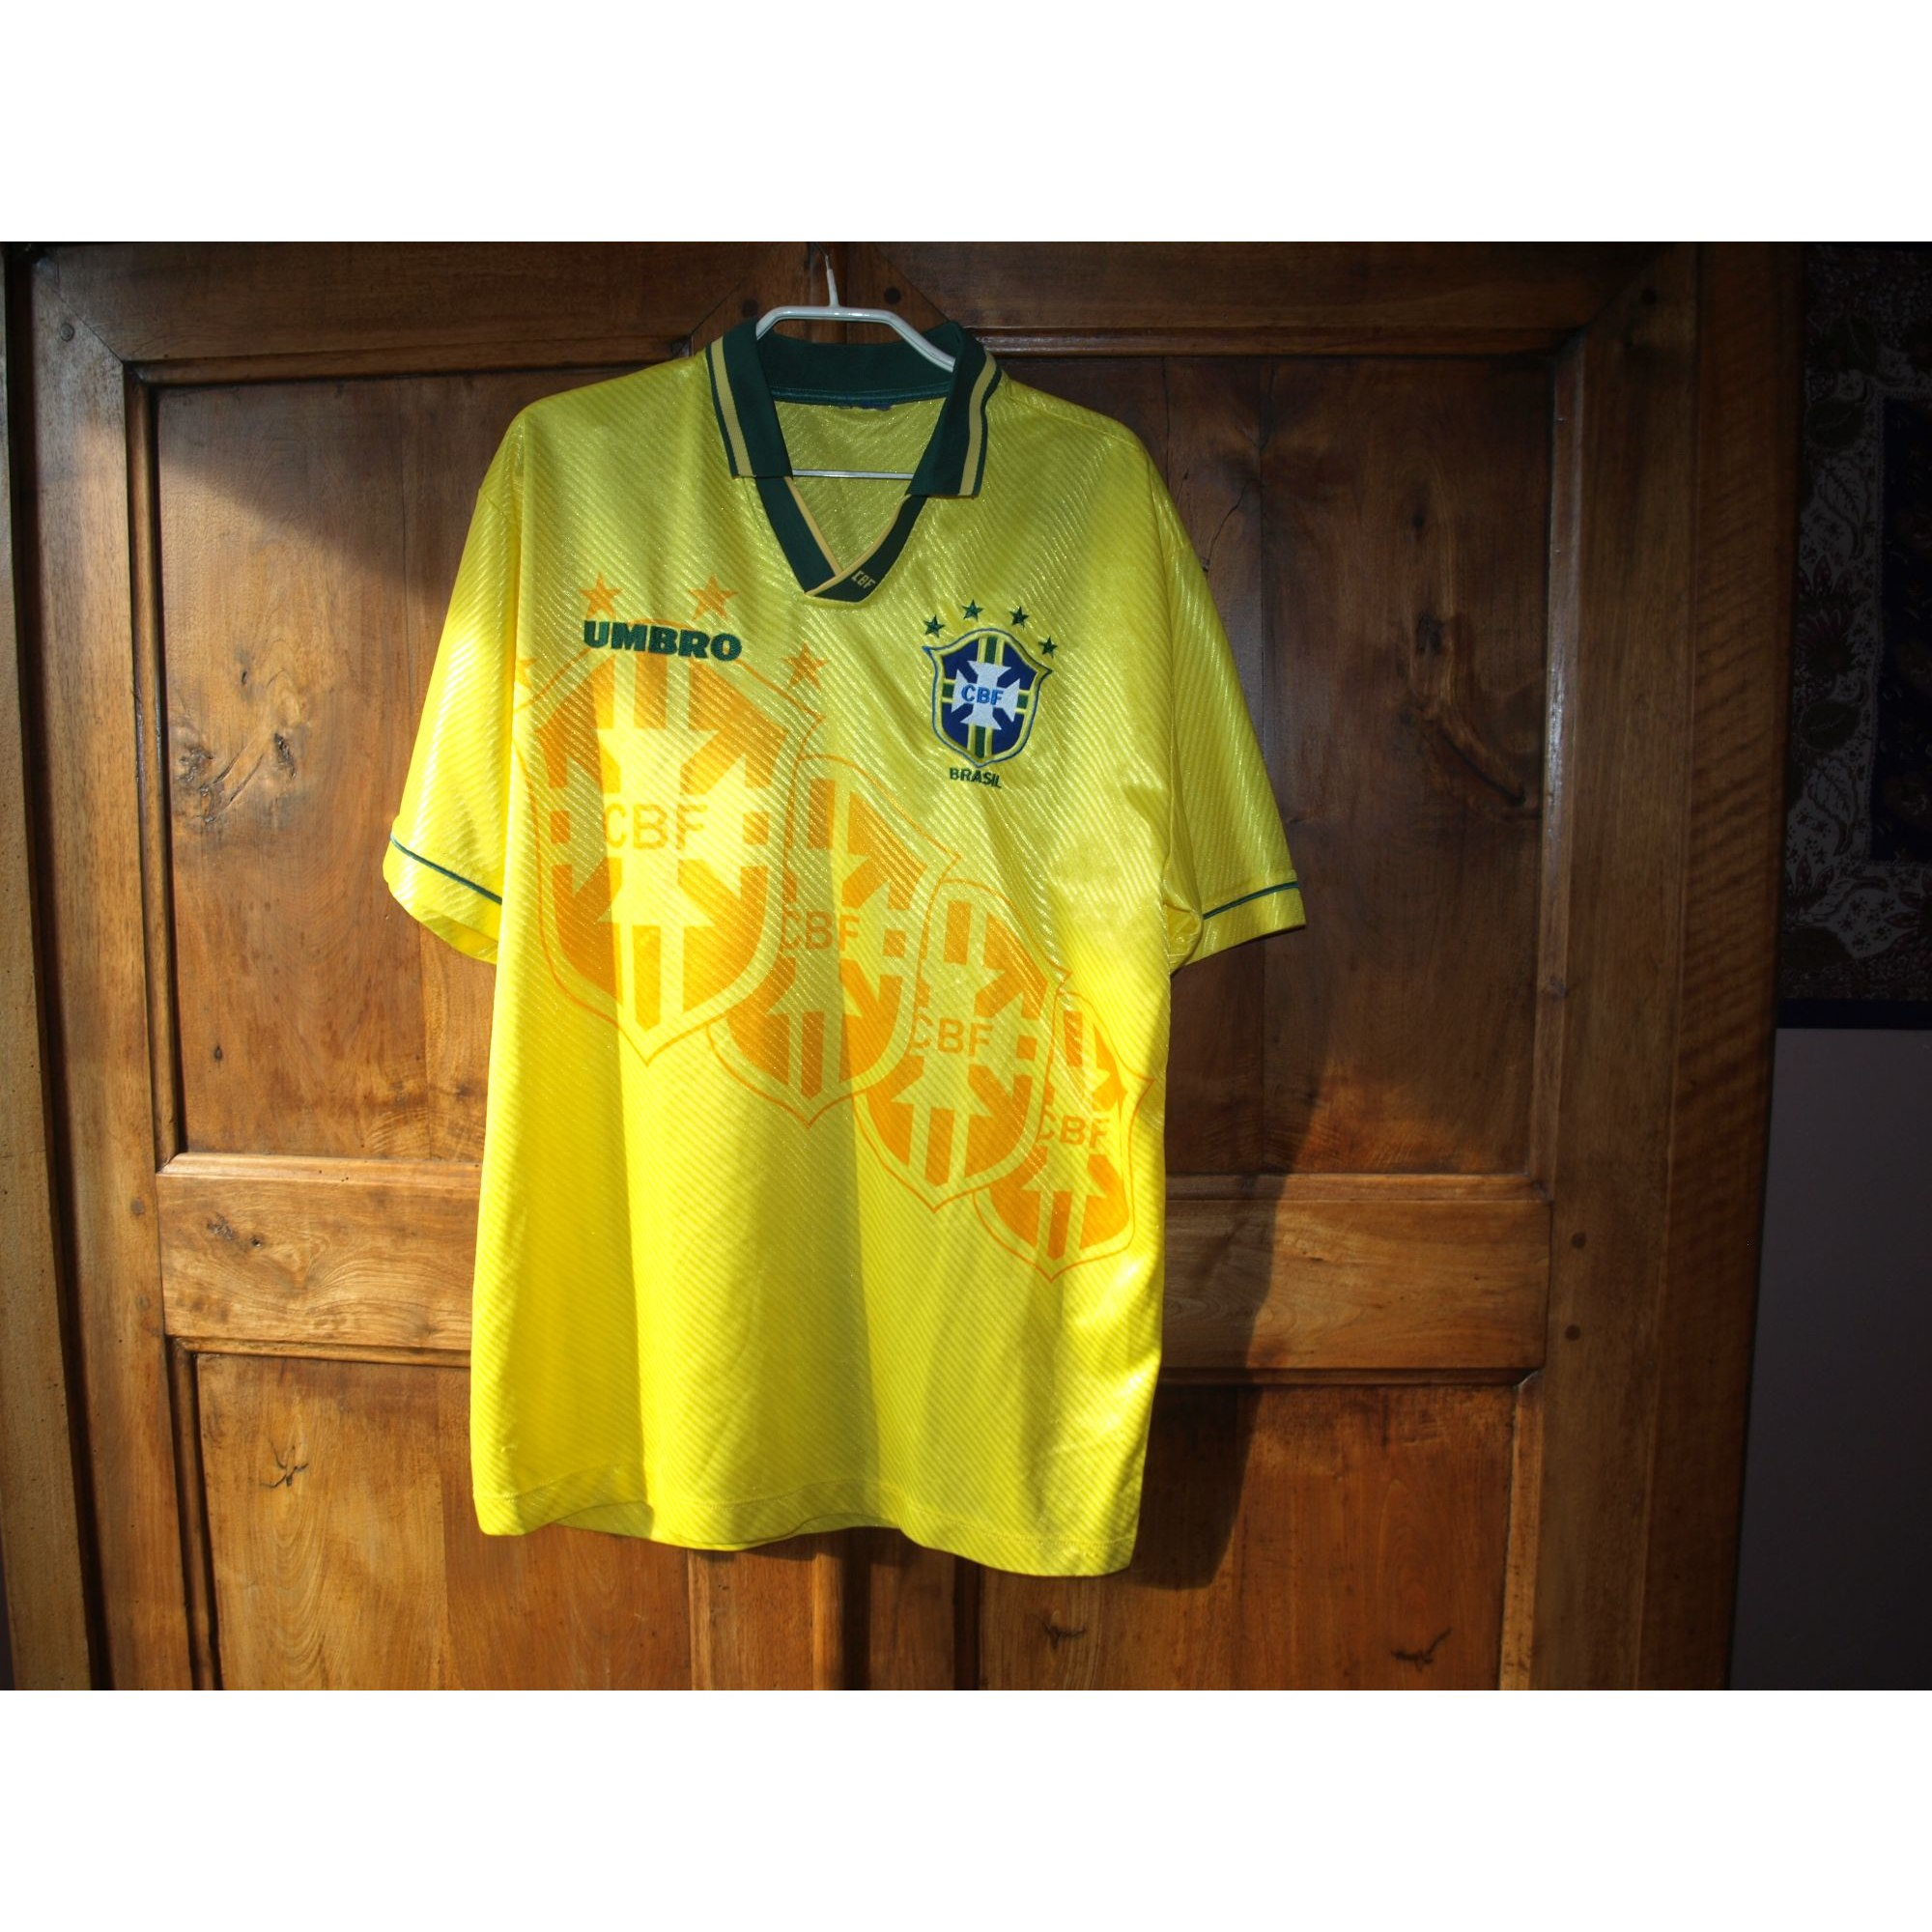 T-shirt UMBRO Yellow